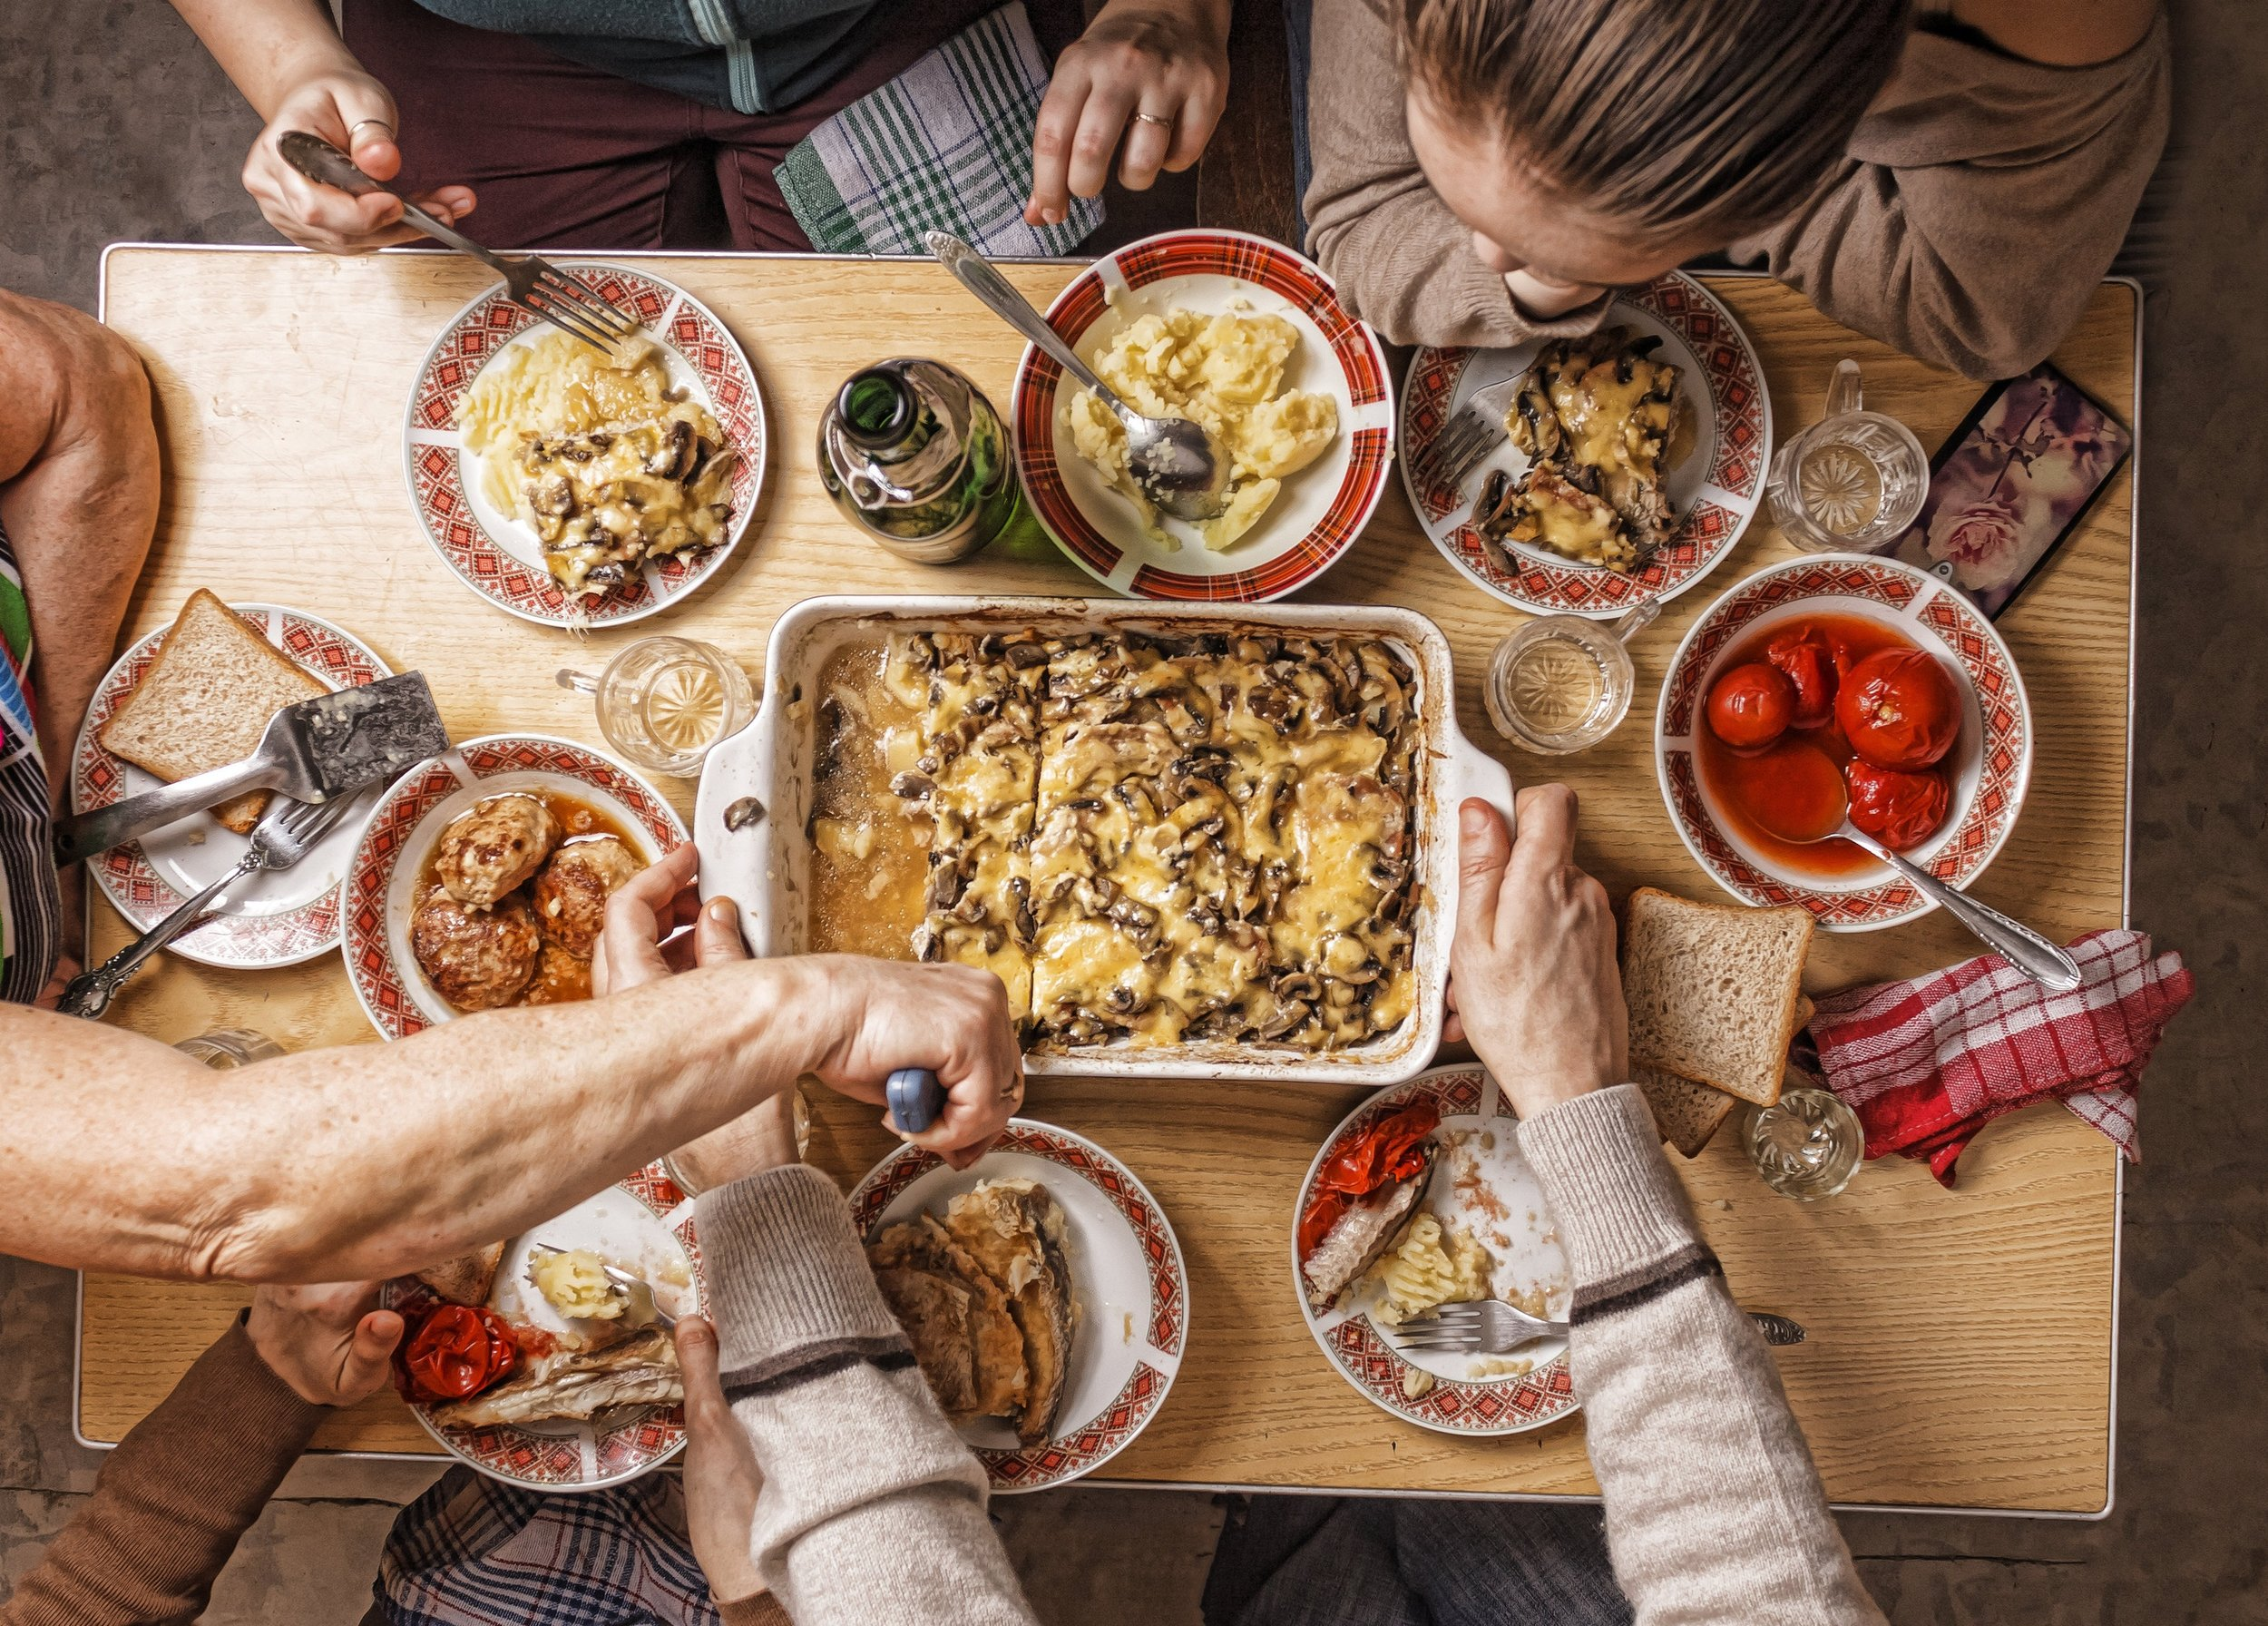 Step ④ - EAT IT UPSavour the deliciousness of your home-cooked meal with the ones you love.